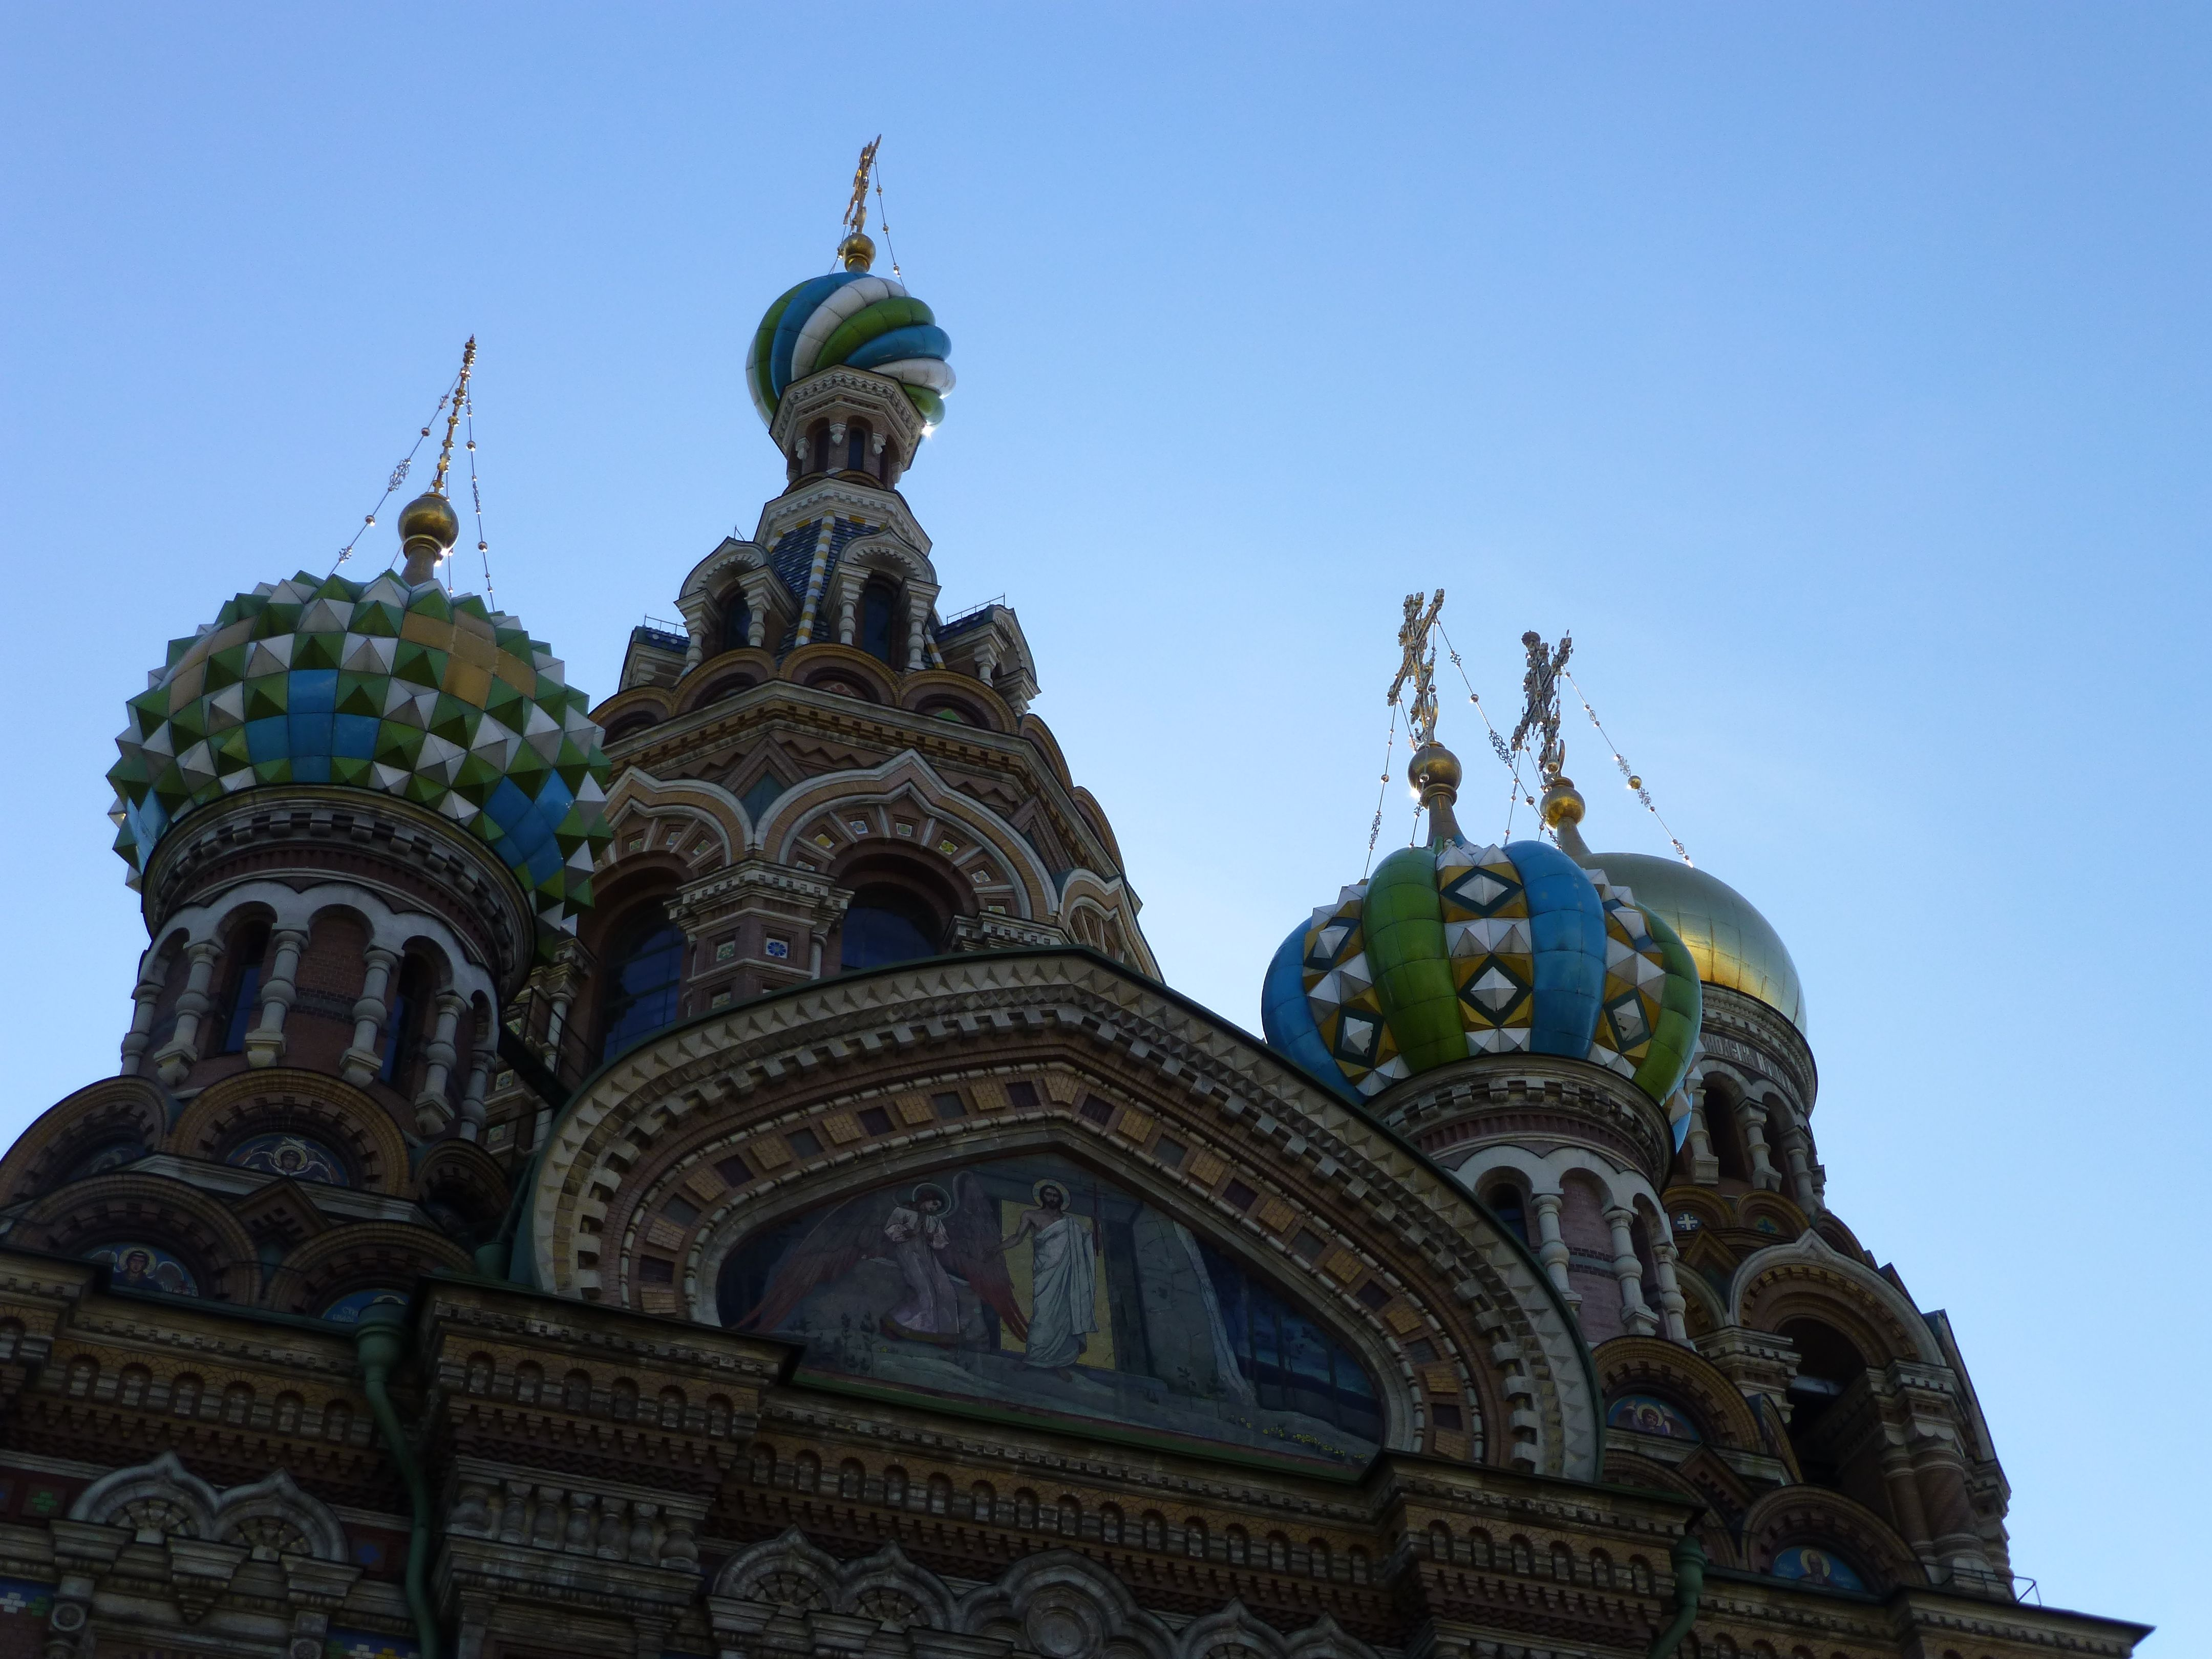 The Church of Our Savior on the Spilled Blood! #saintpetersburg #russia #semesteratsea